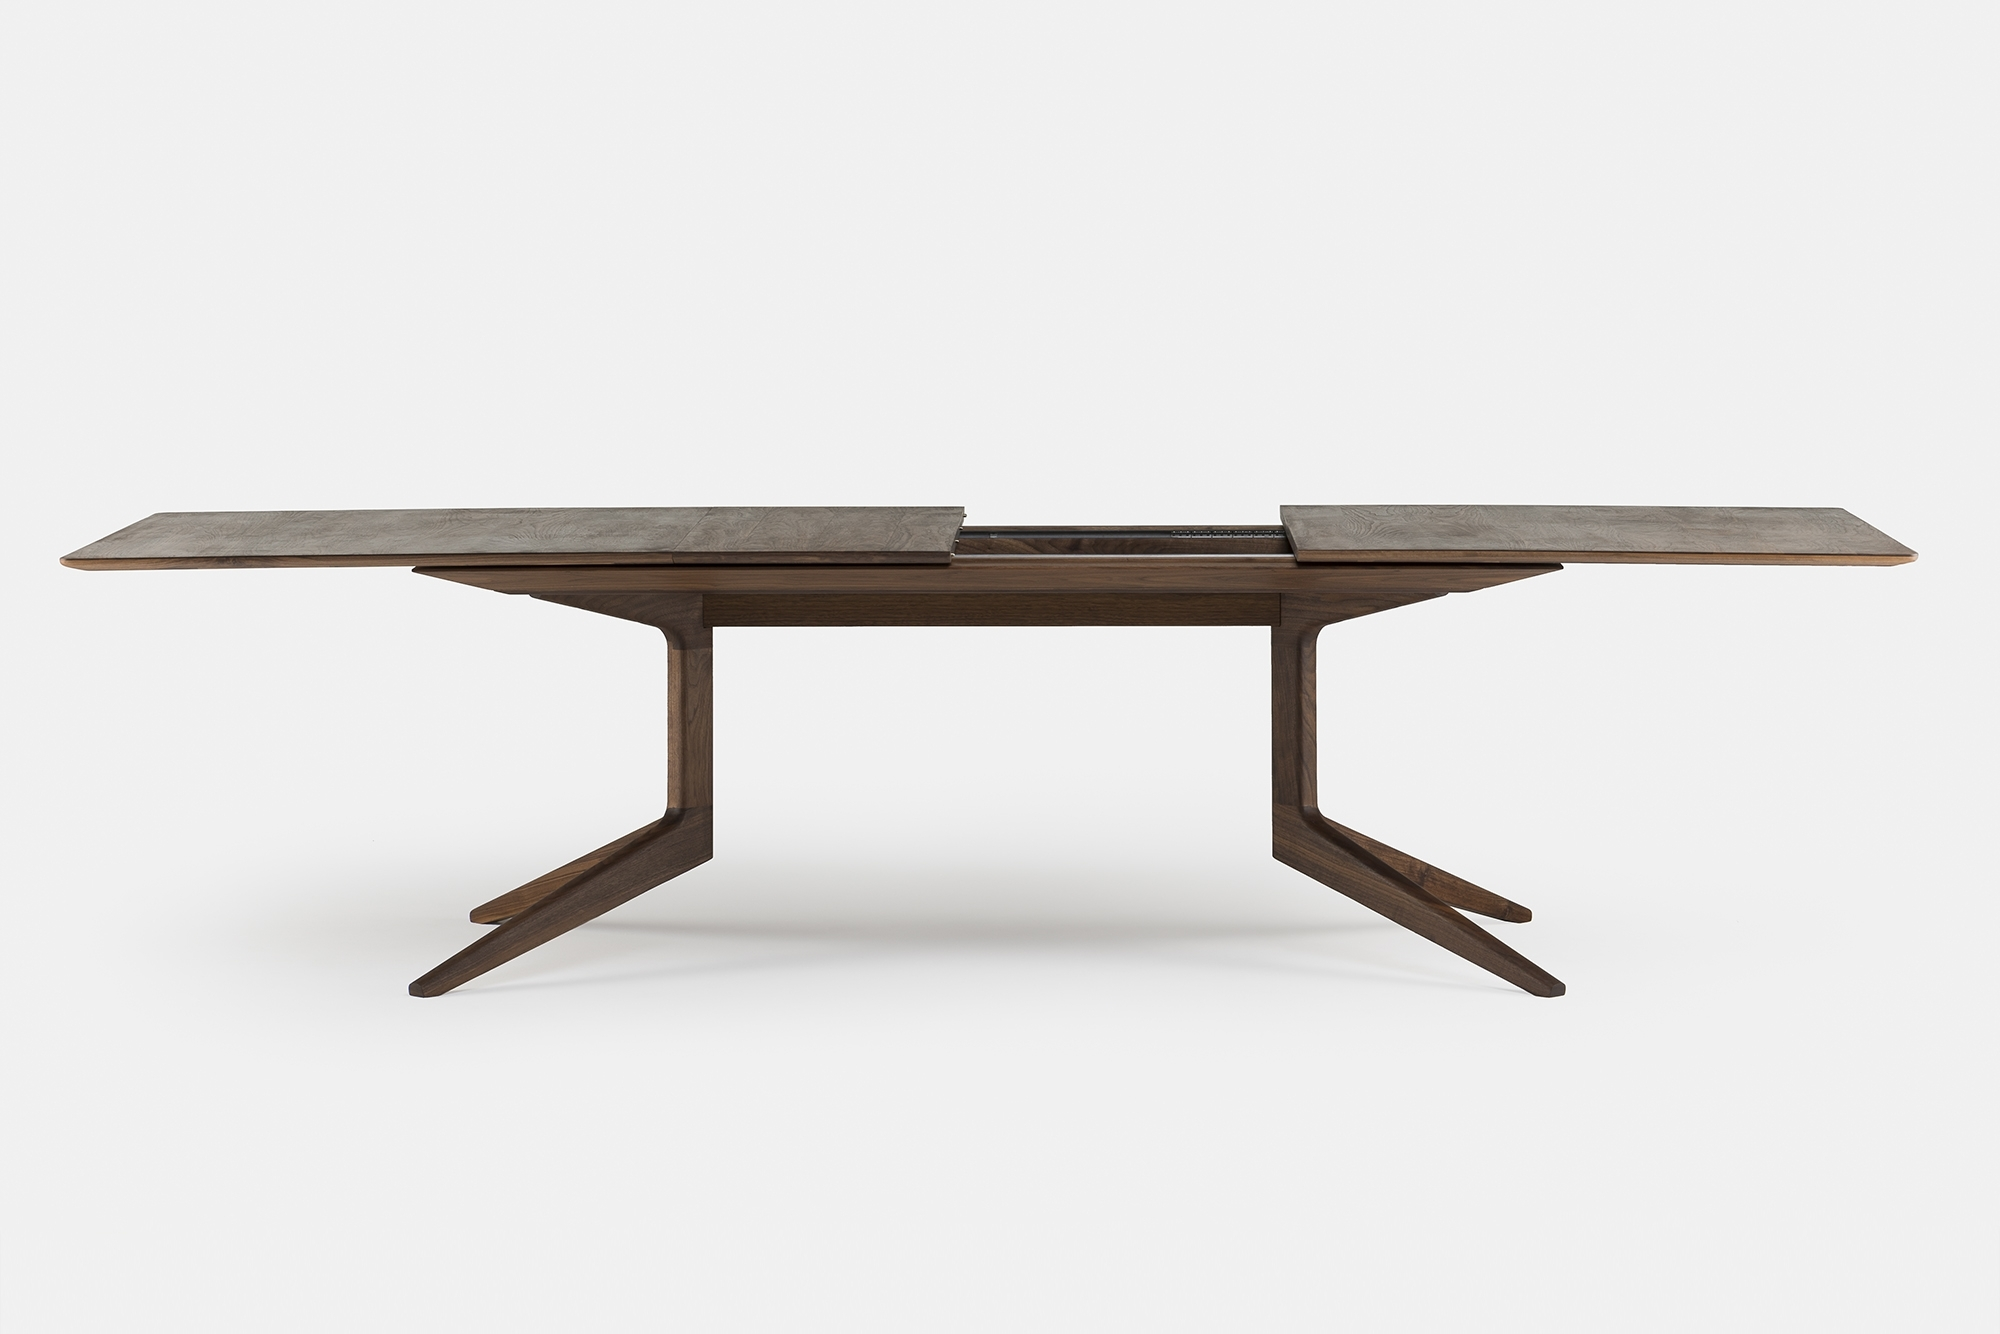 Extending Outdoor Dining Tables With Regard To Widely Used Viewing Matthew Hilton 341E Light Extending Table Product (Gallery 13 of 25)